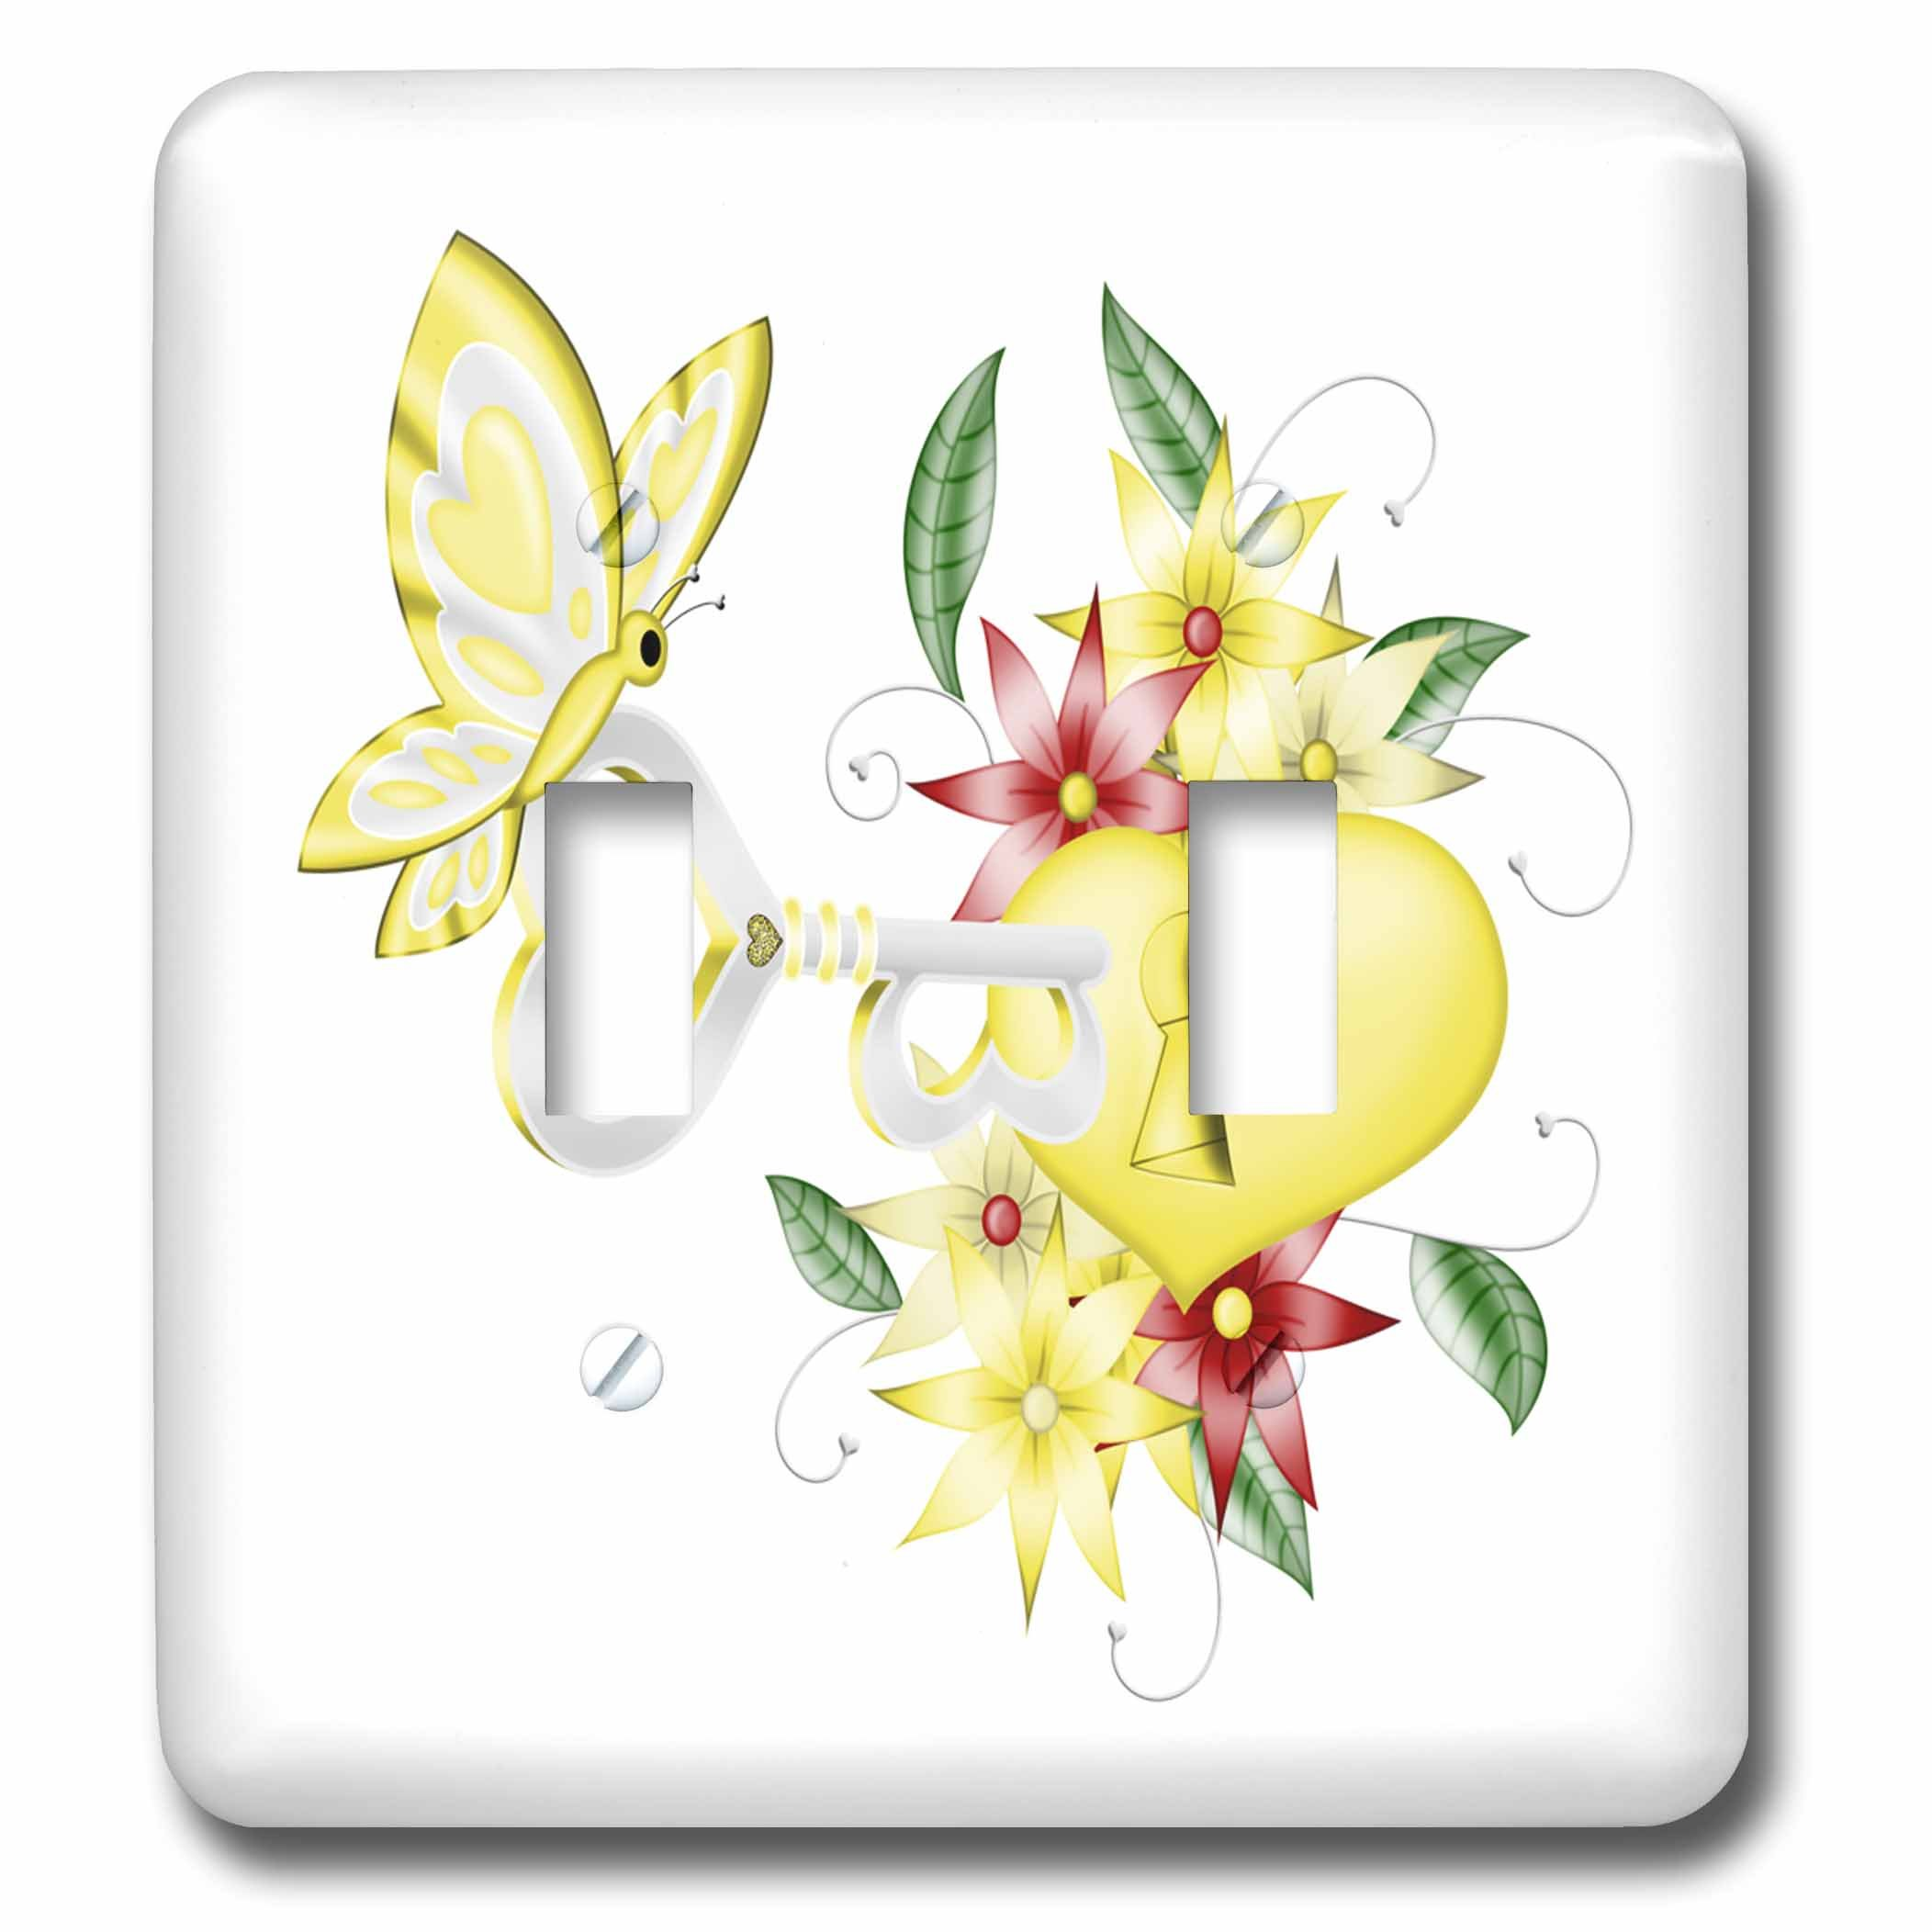 3dRose Anne Marie Baugh - Illustrations - Cute Yellow and Red Floral Lock and Key With A Butterfly Illustration - Light Switch Covers - double toggle switch (lsp_264900_2) by 3dRose (Image #1)